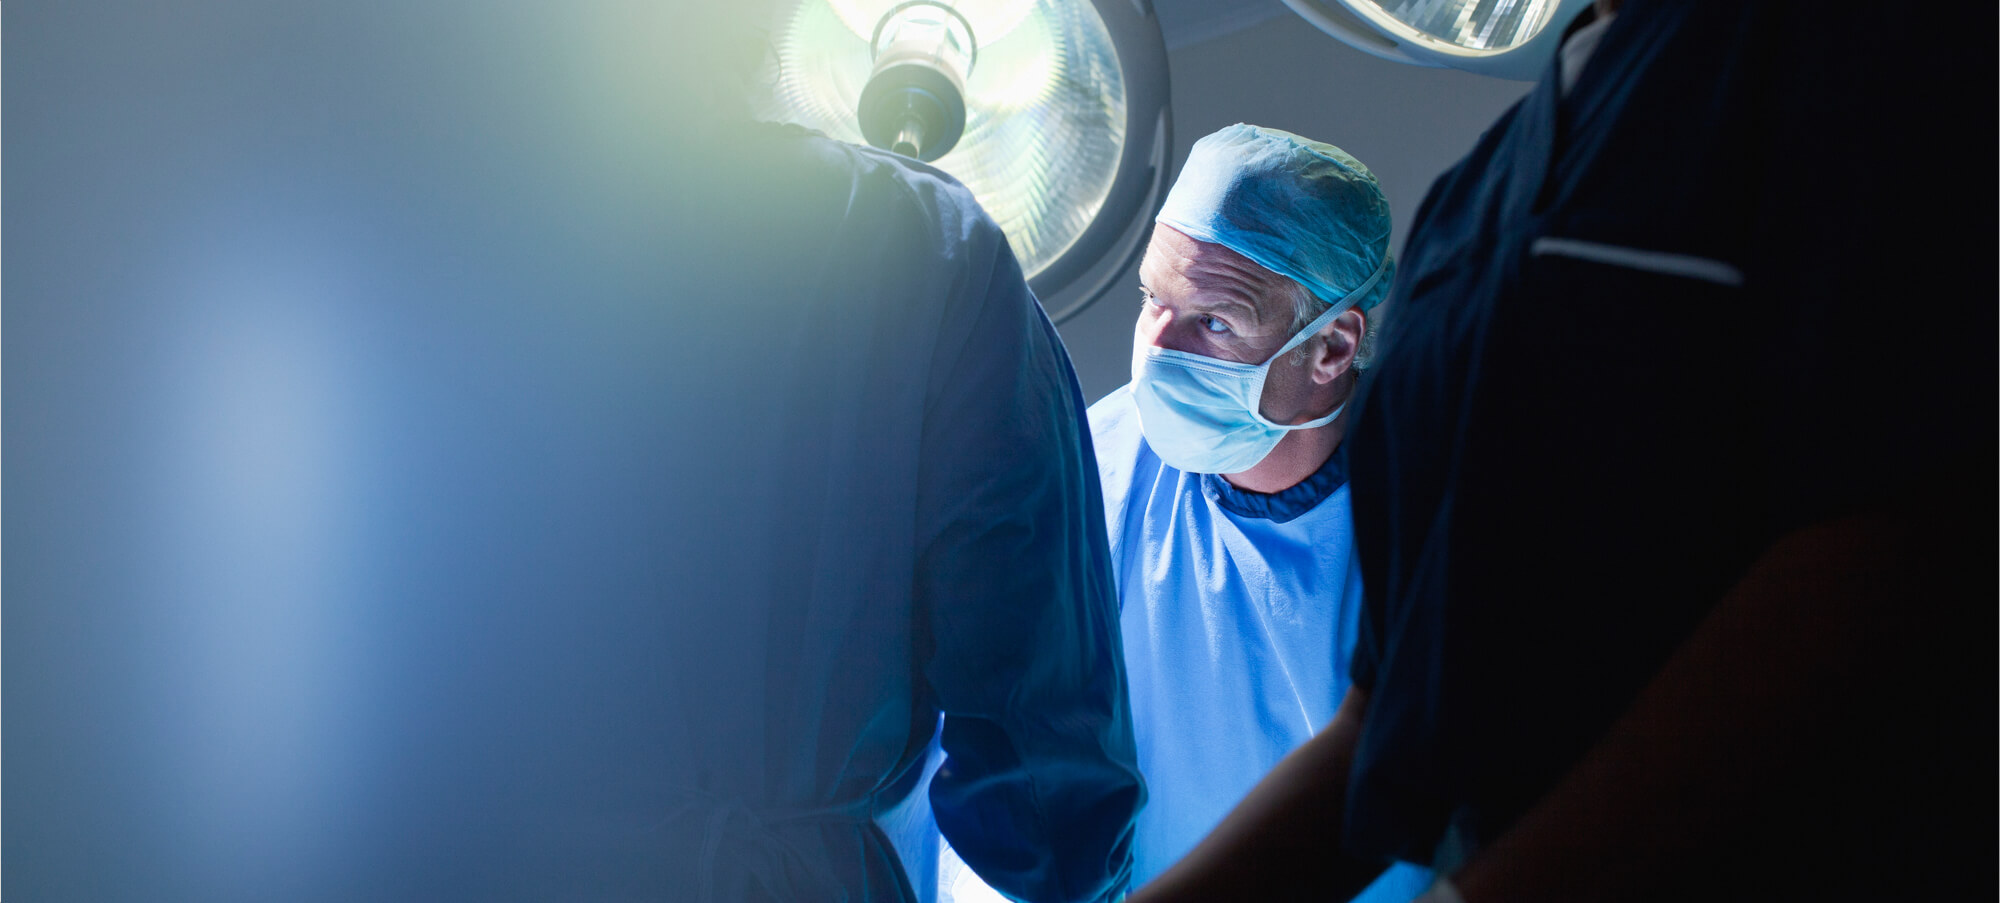 Fight the cuts that threaten timely access to surgical care